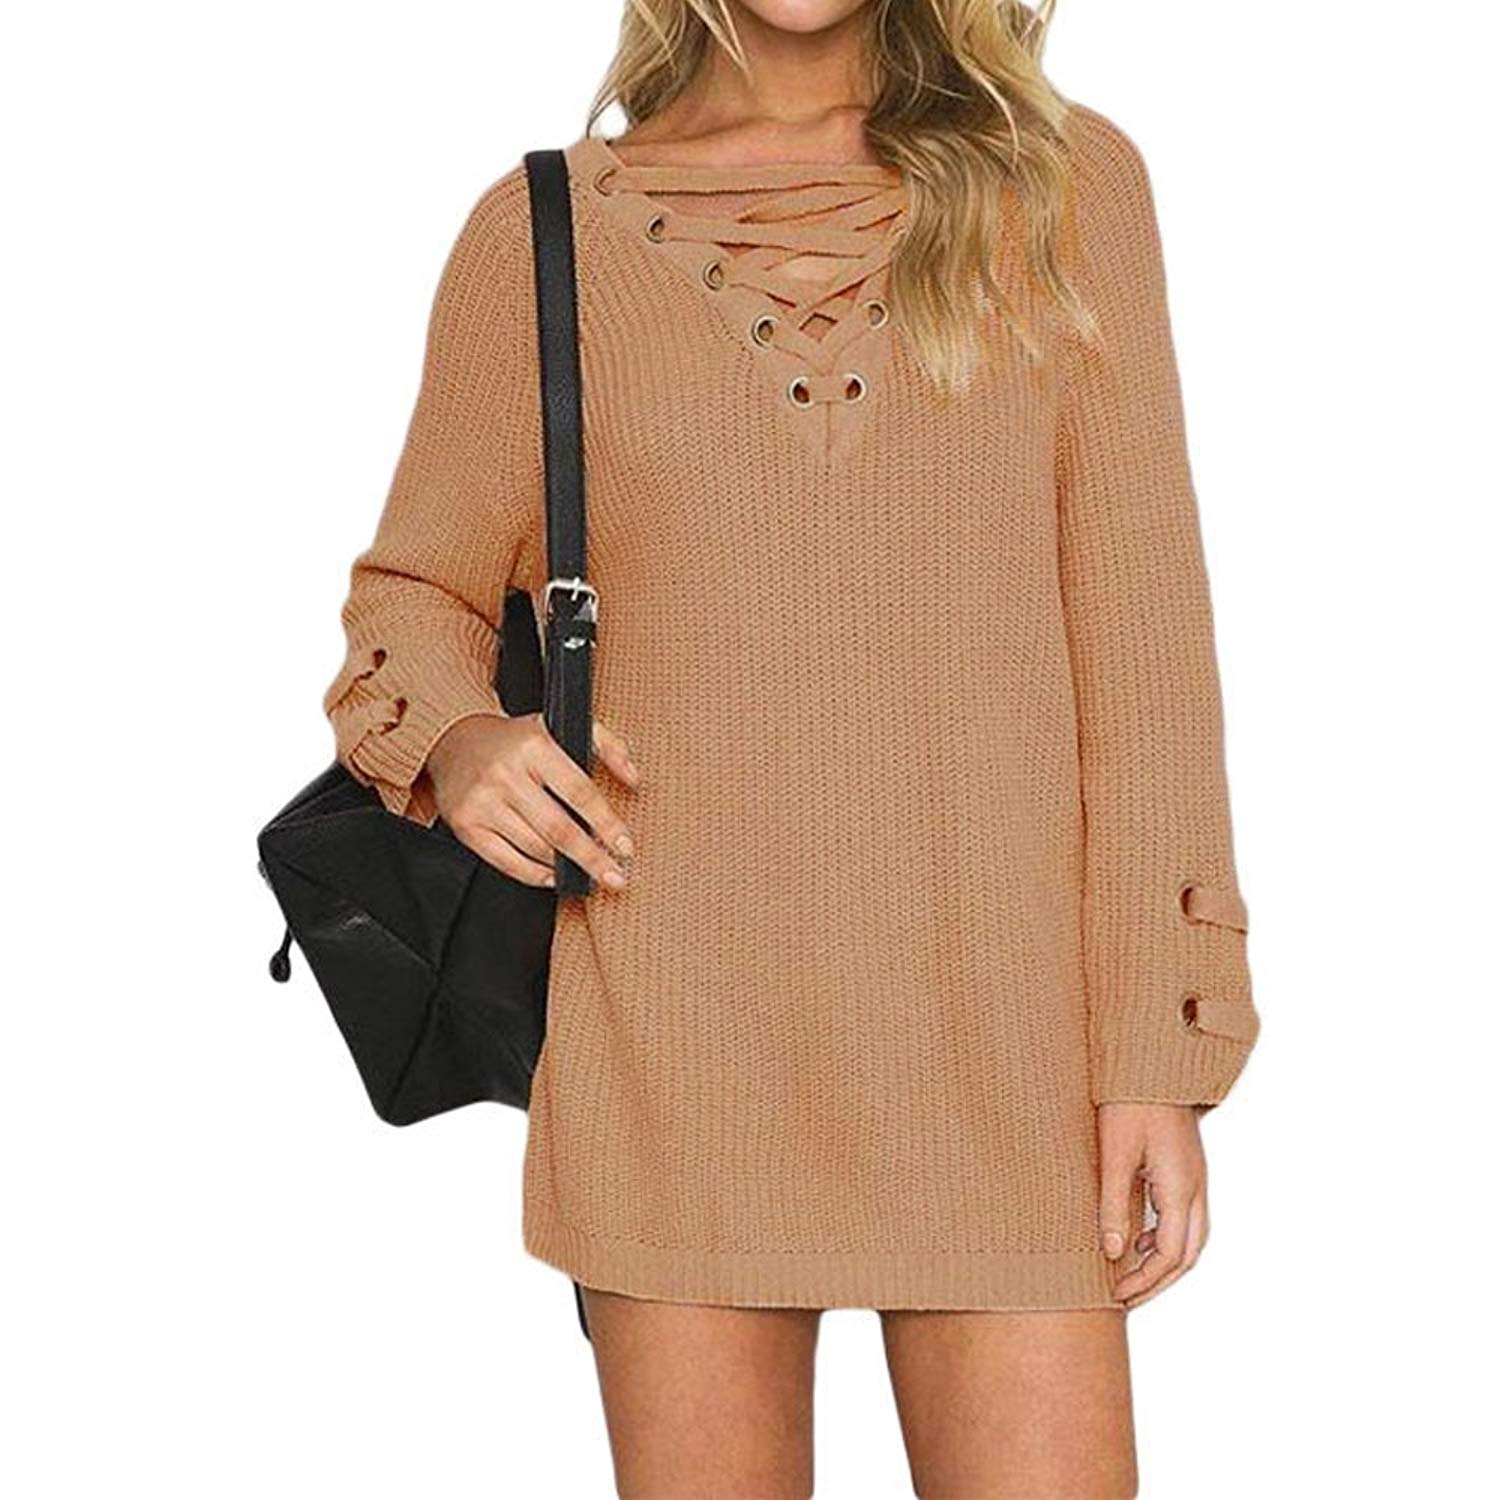 7594f537992 Get Quotations · Queen Area Women s Lace up Front V Neck Long Sleeve Knit  Pullover Sweater Dress Top